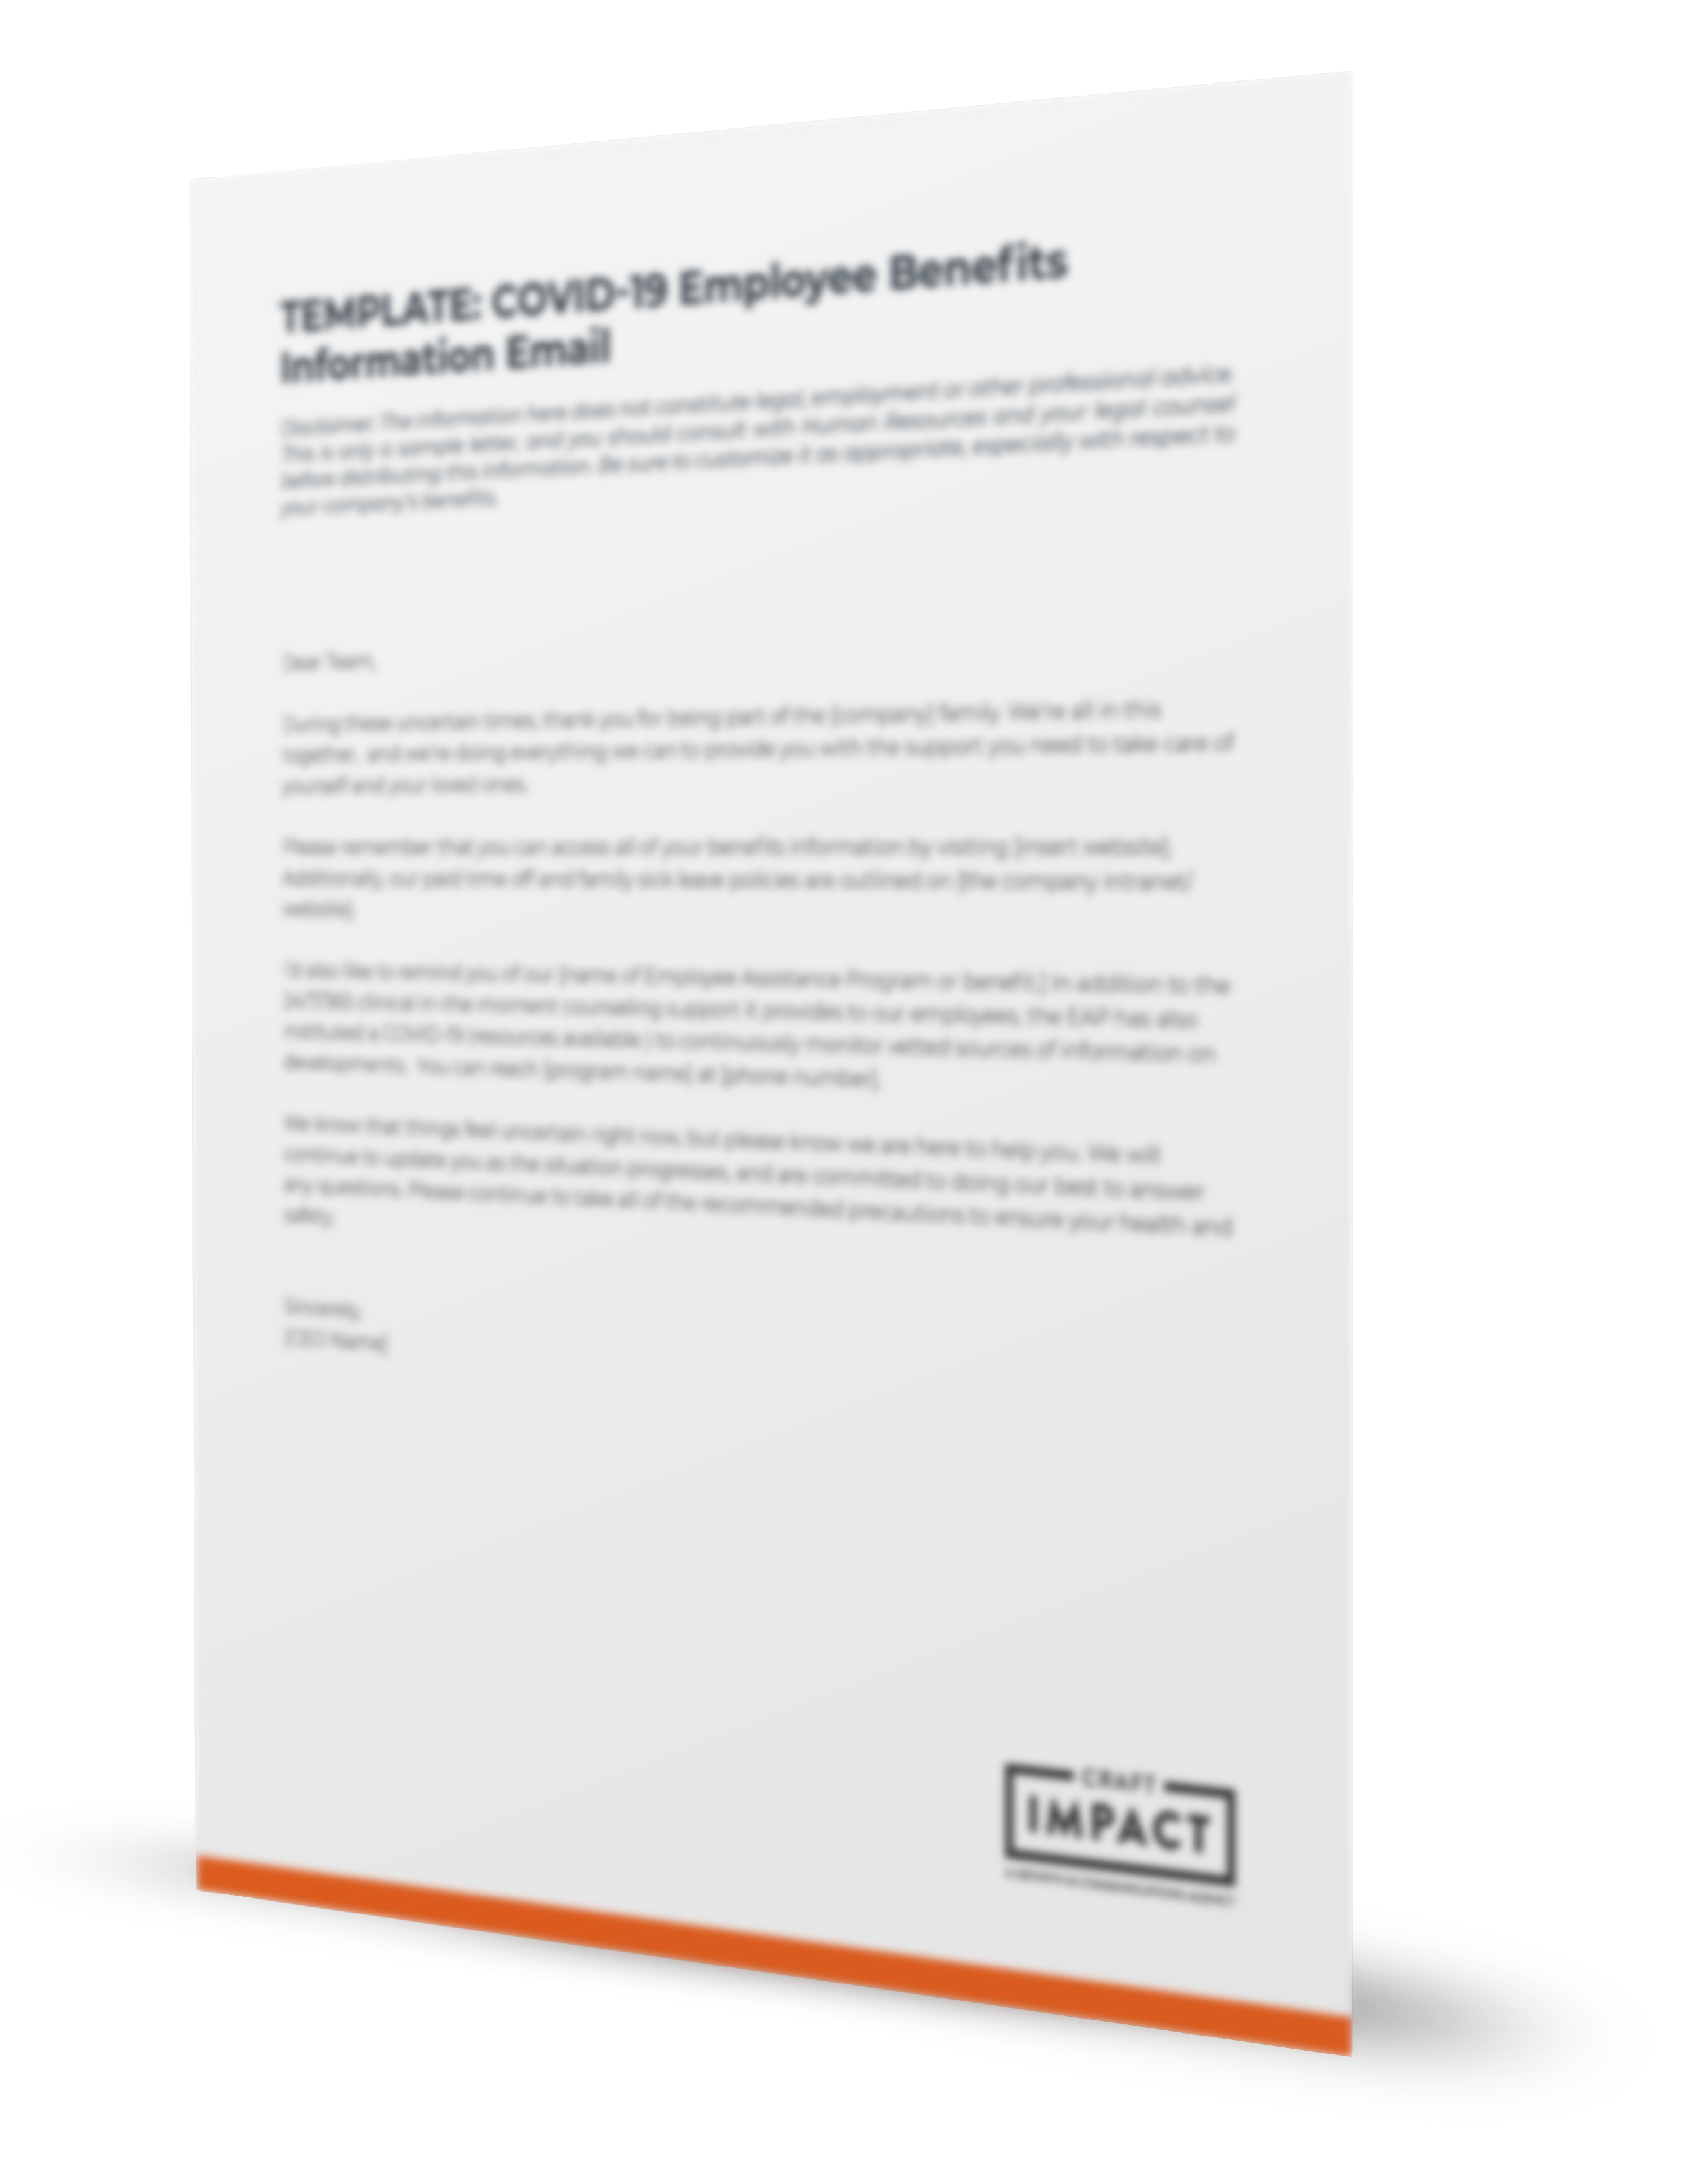 employee-benefits-information-email-preview-image